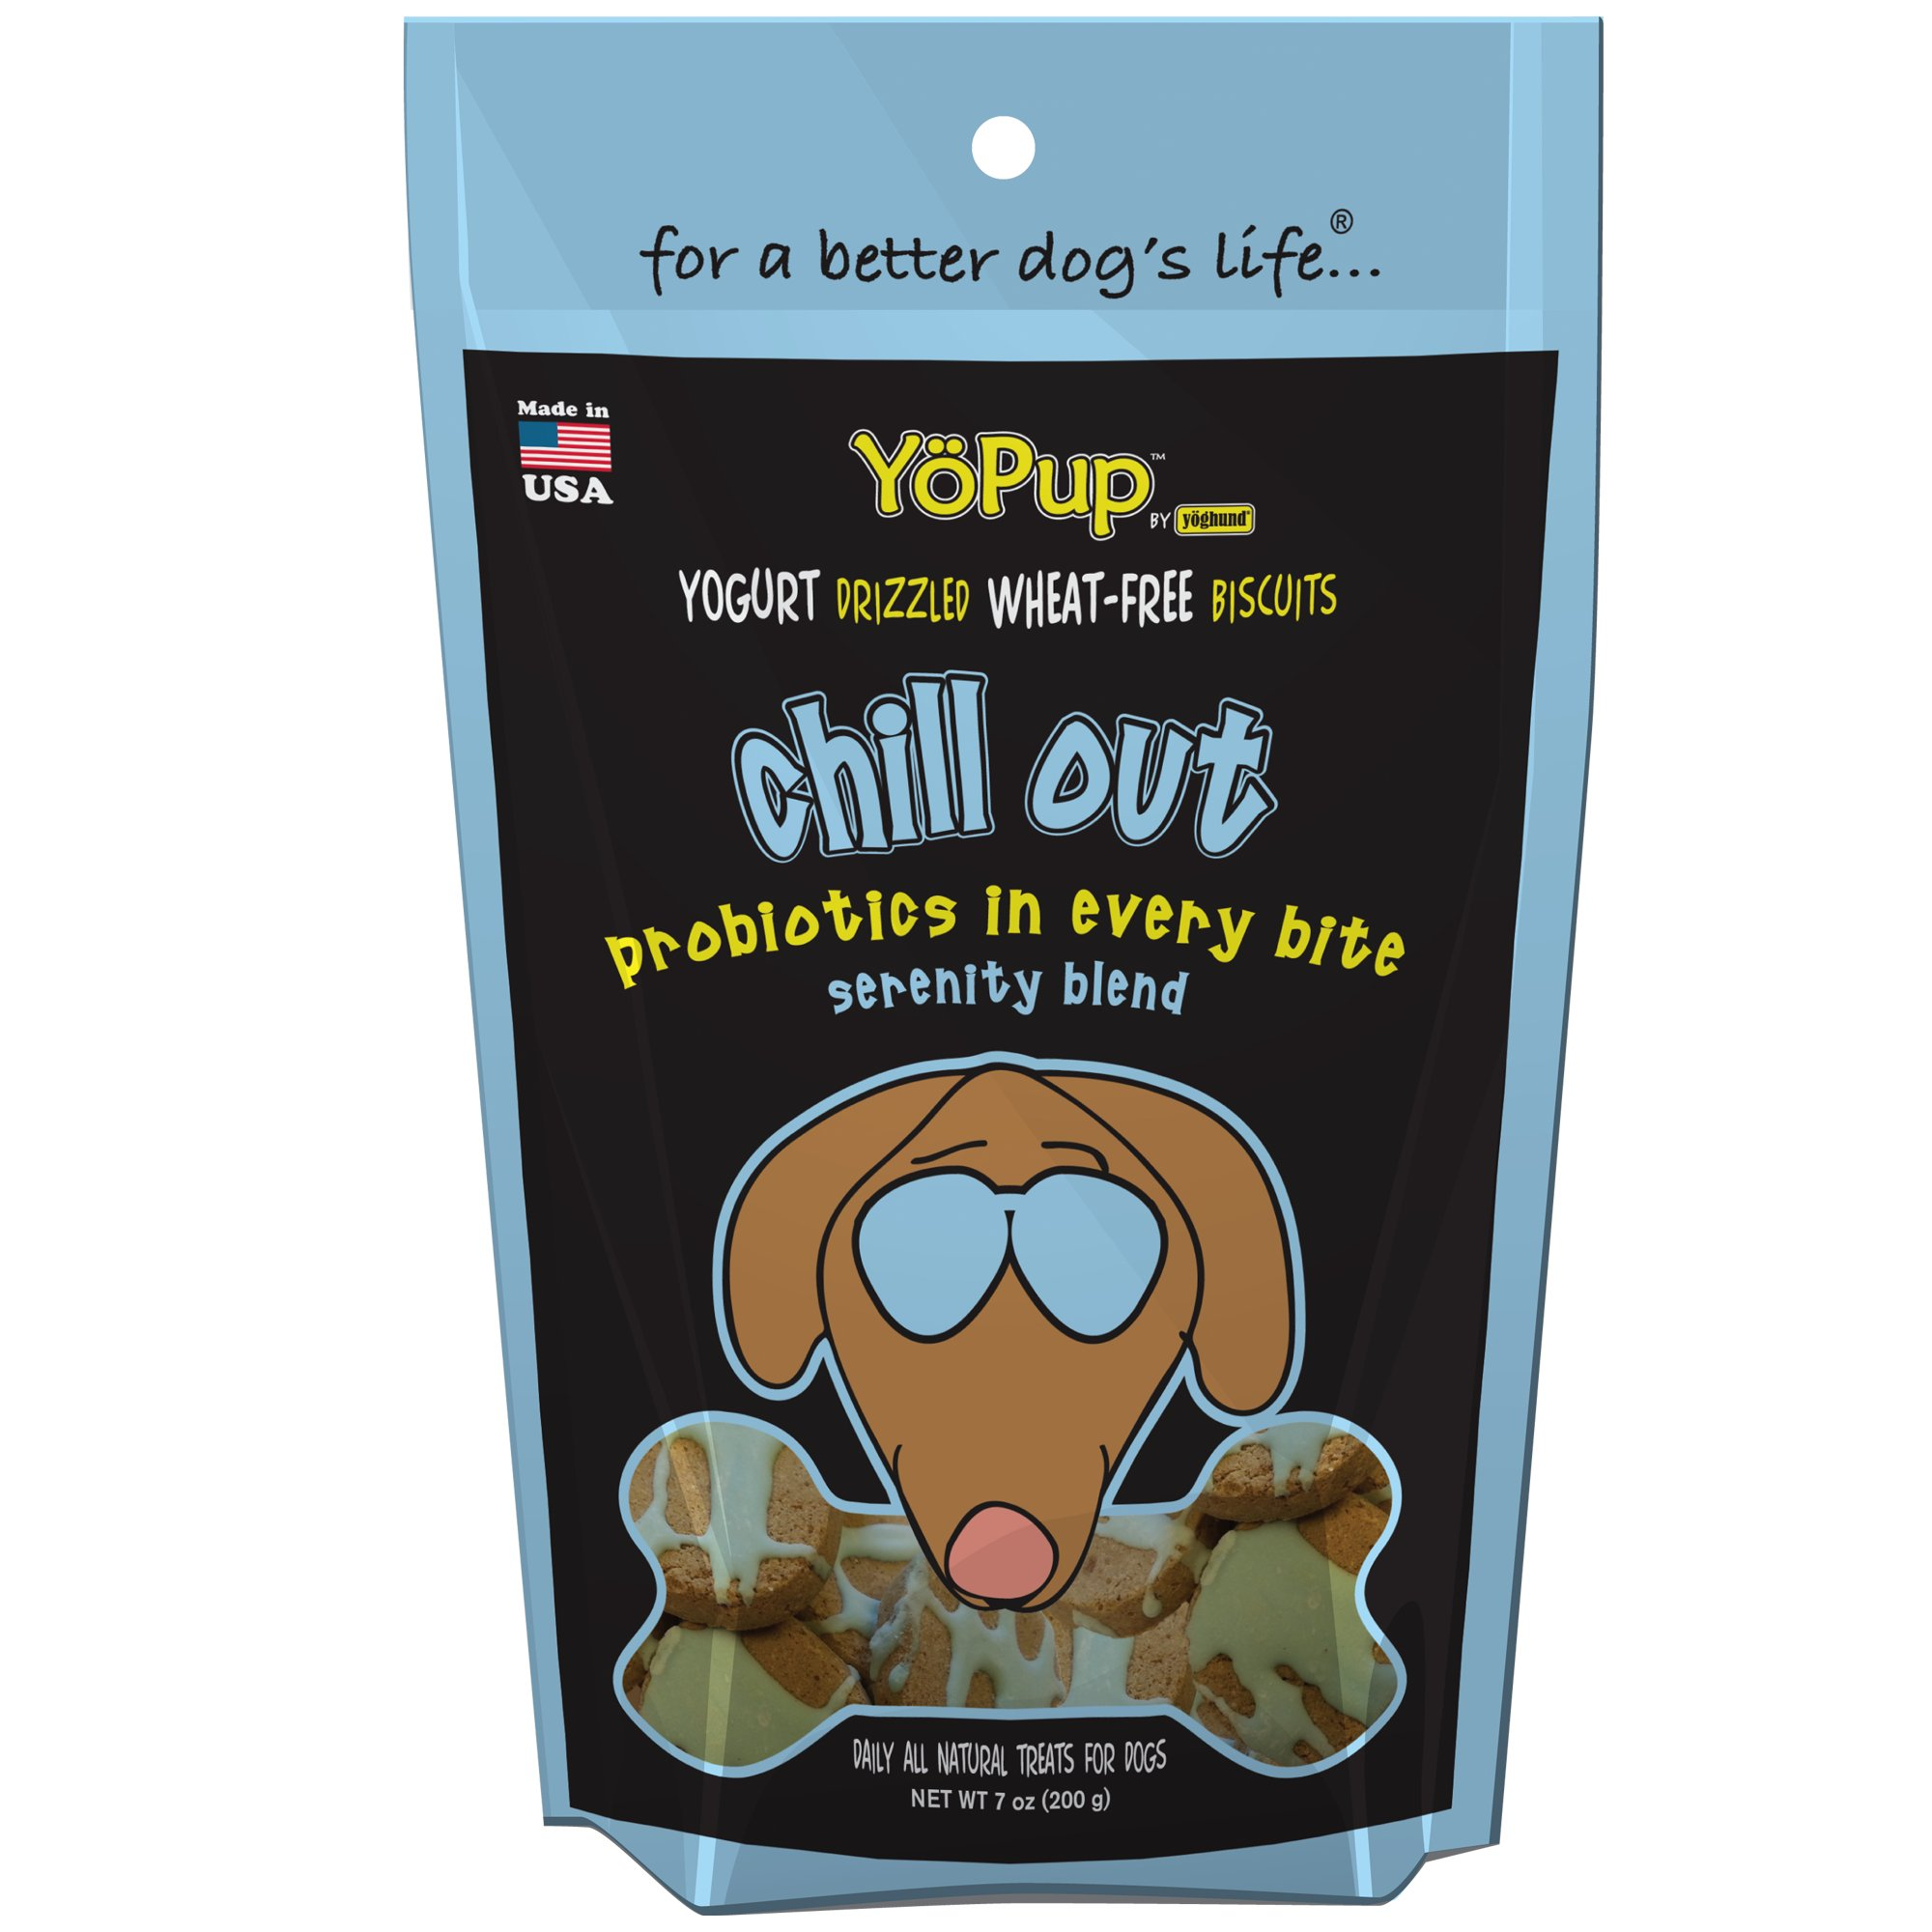 Yoghund YoPup Chill Out Dog Biscuits